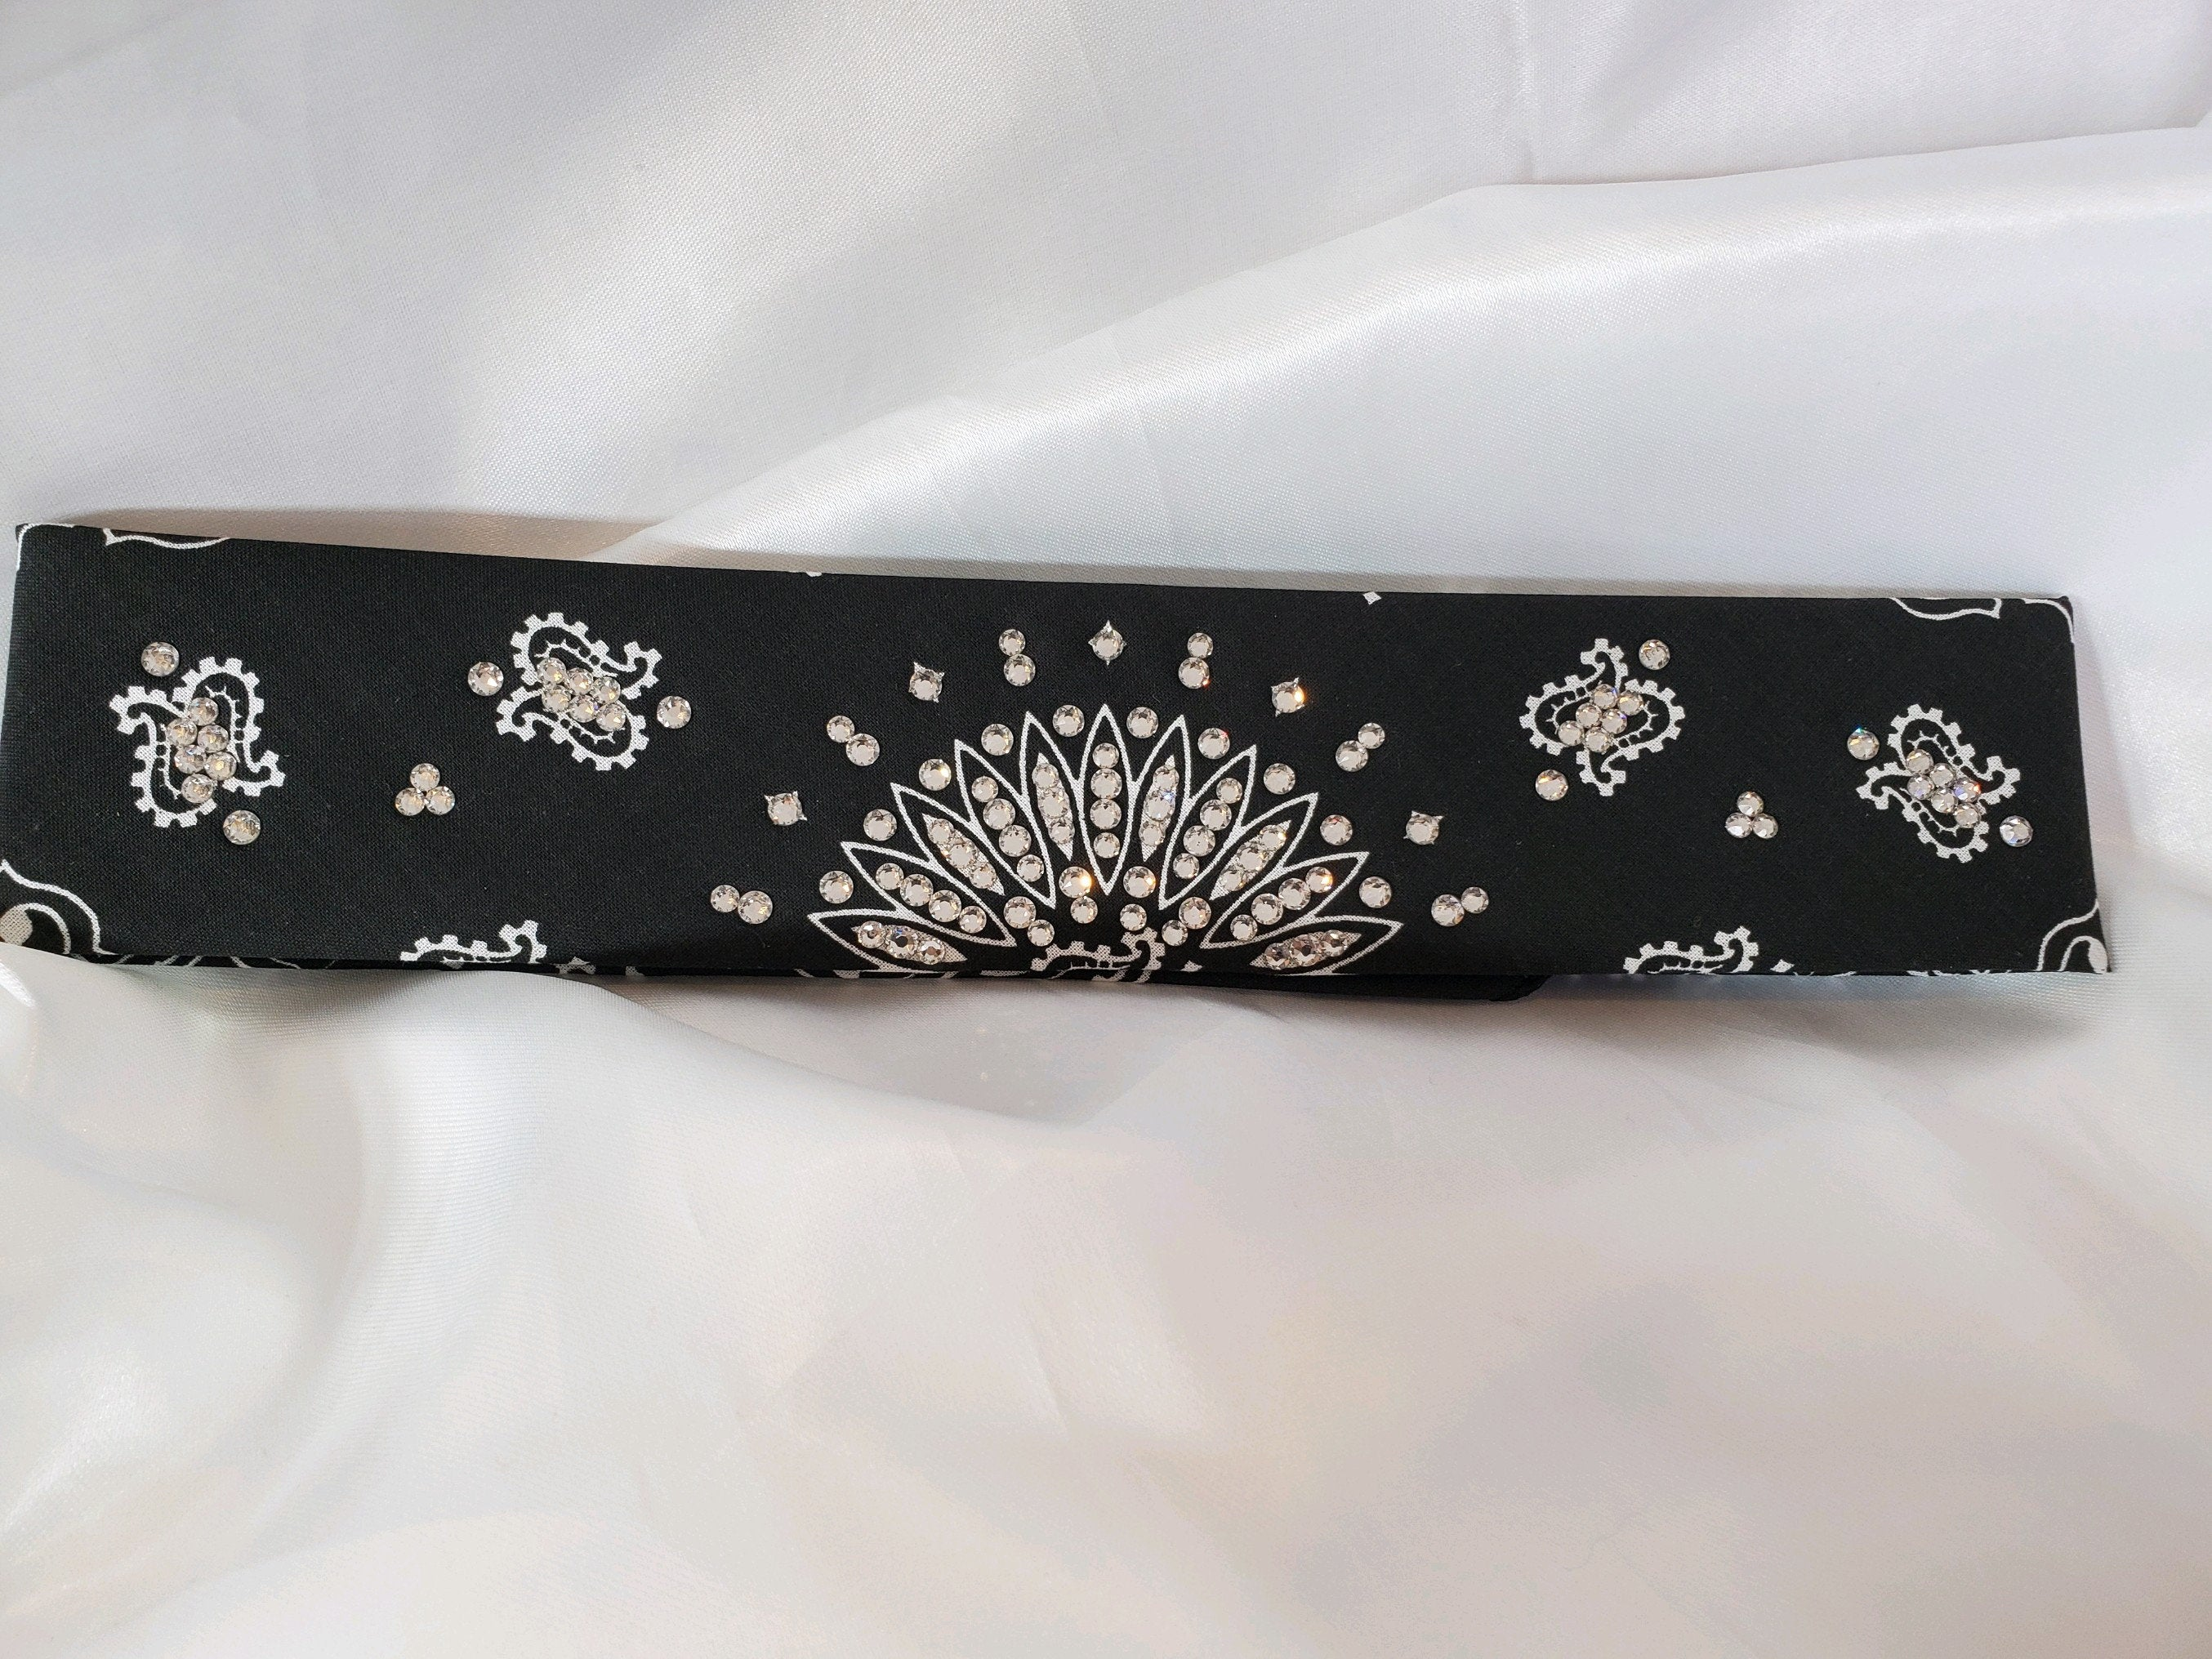 Narrow Black Bandana with Clear Diamond Swarovski Crystals (Sku2057)